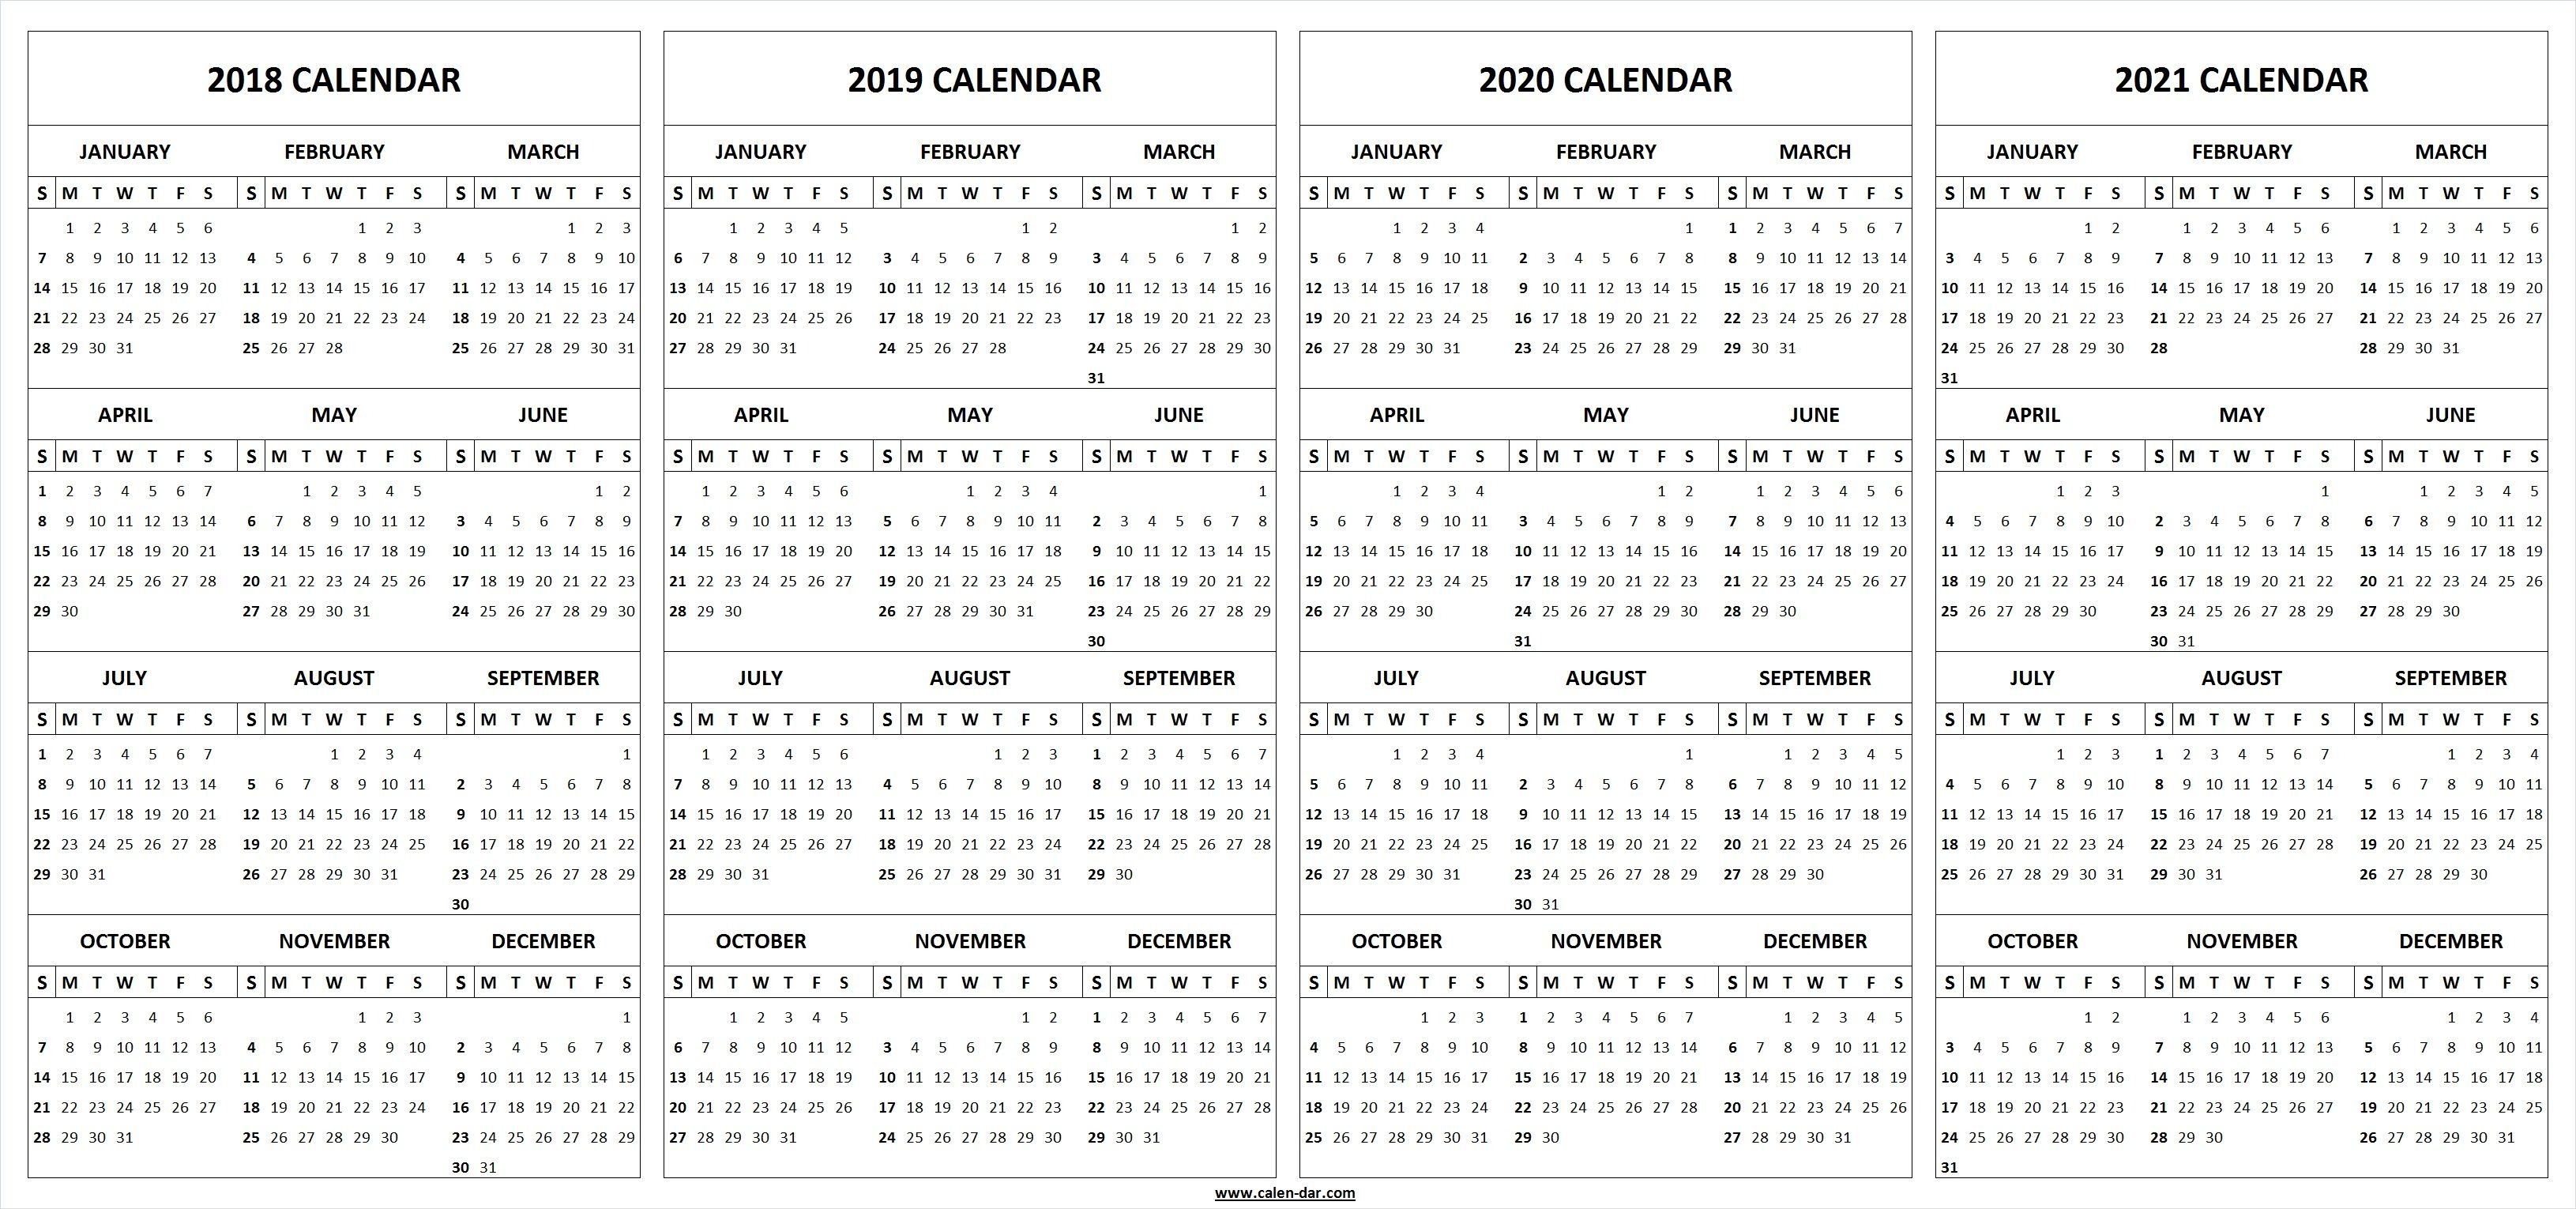 4 Four Year 2018 2019 2020 2021 Calendar Printable Template in Free Yearly 2019, 2020 2021 Calendar